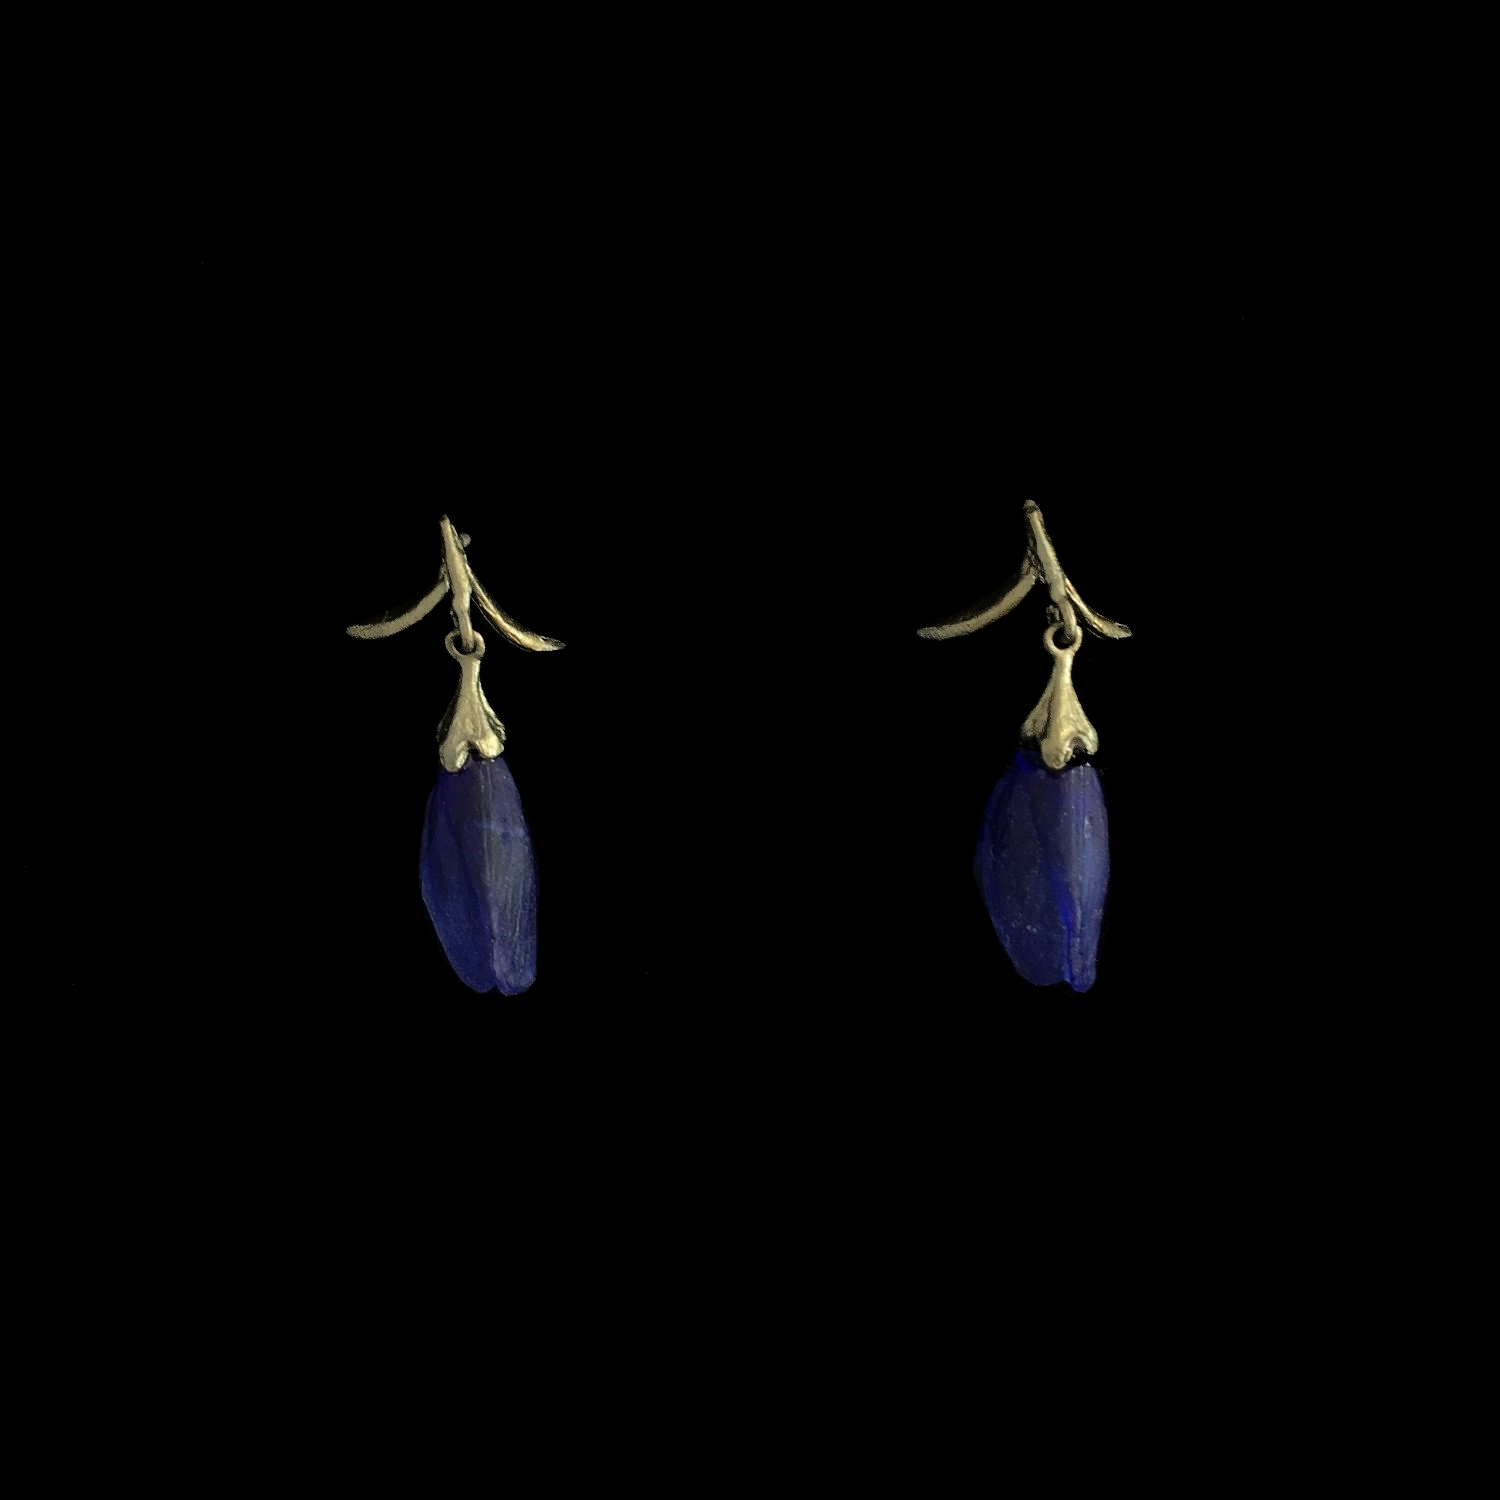 False Indigo Earring - Large Glass Bud Post